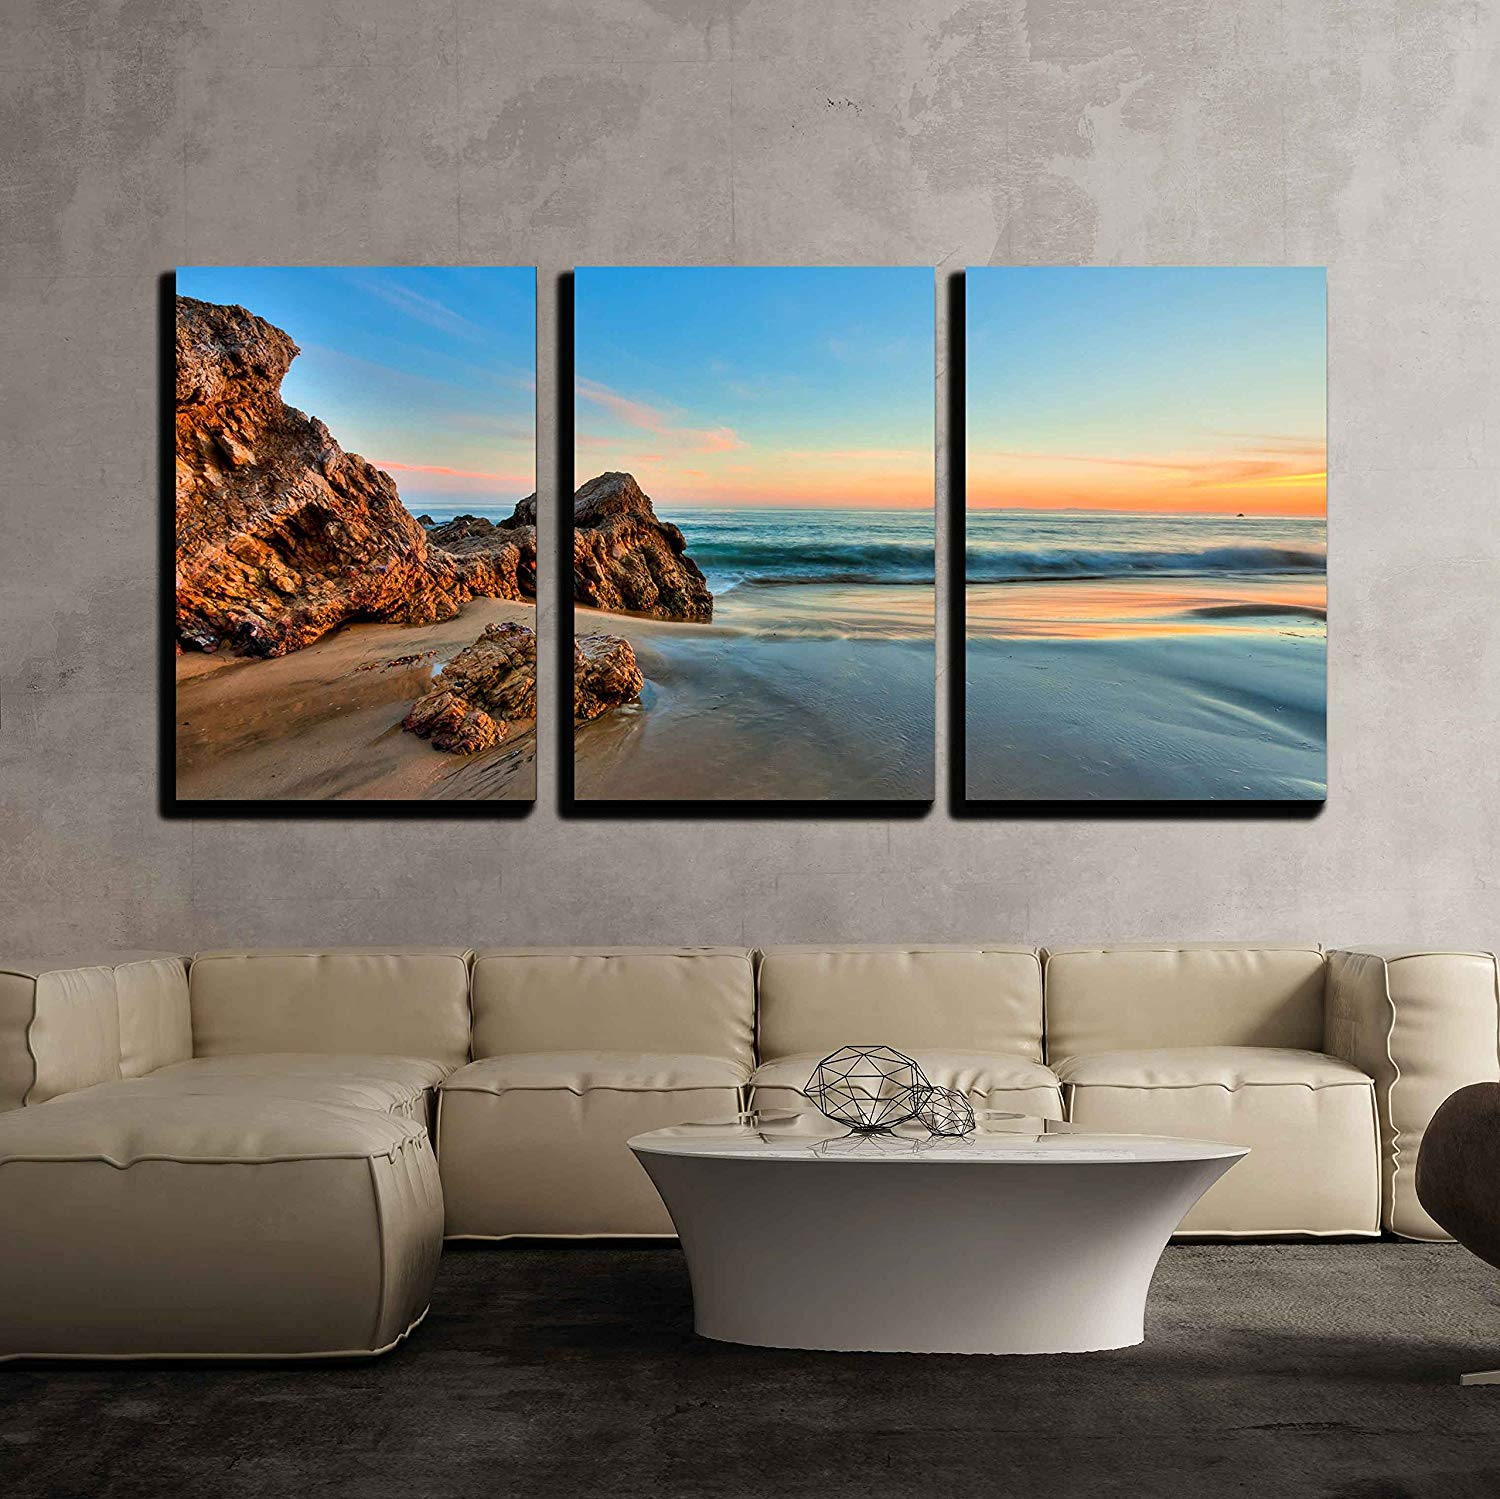 wall26 3 piece canvas wall art sunset at california beach modern home decor stretched and framed ready to hang 24 x36 x3 panels walmart com